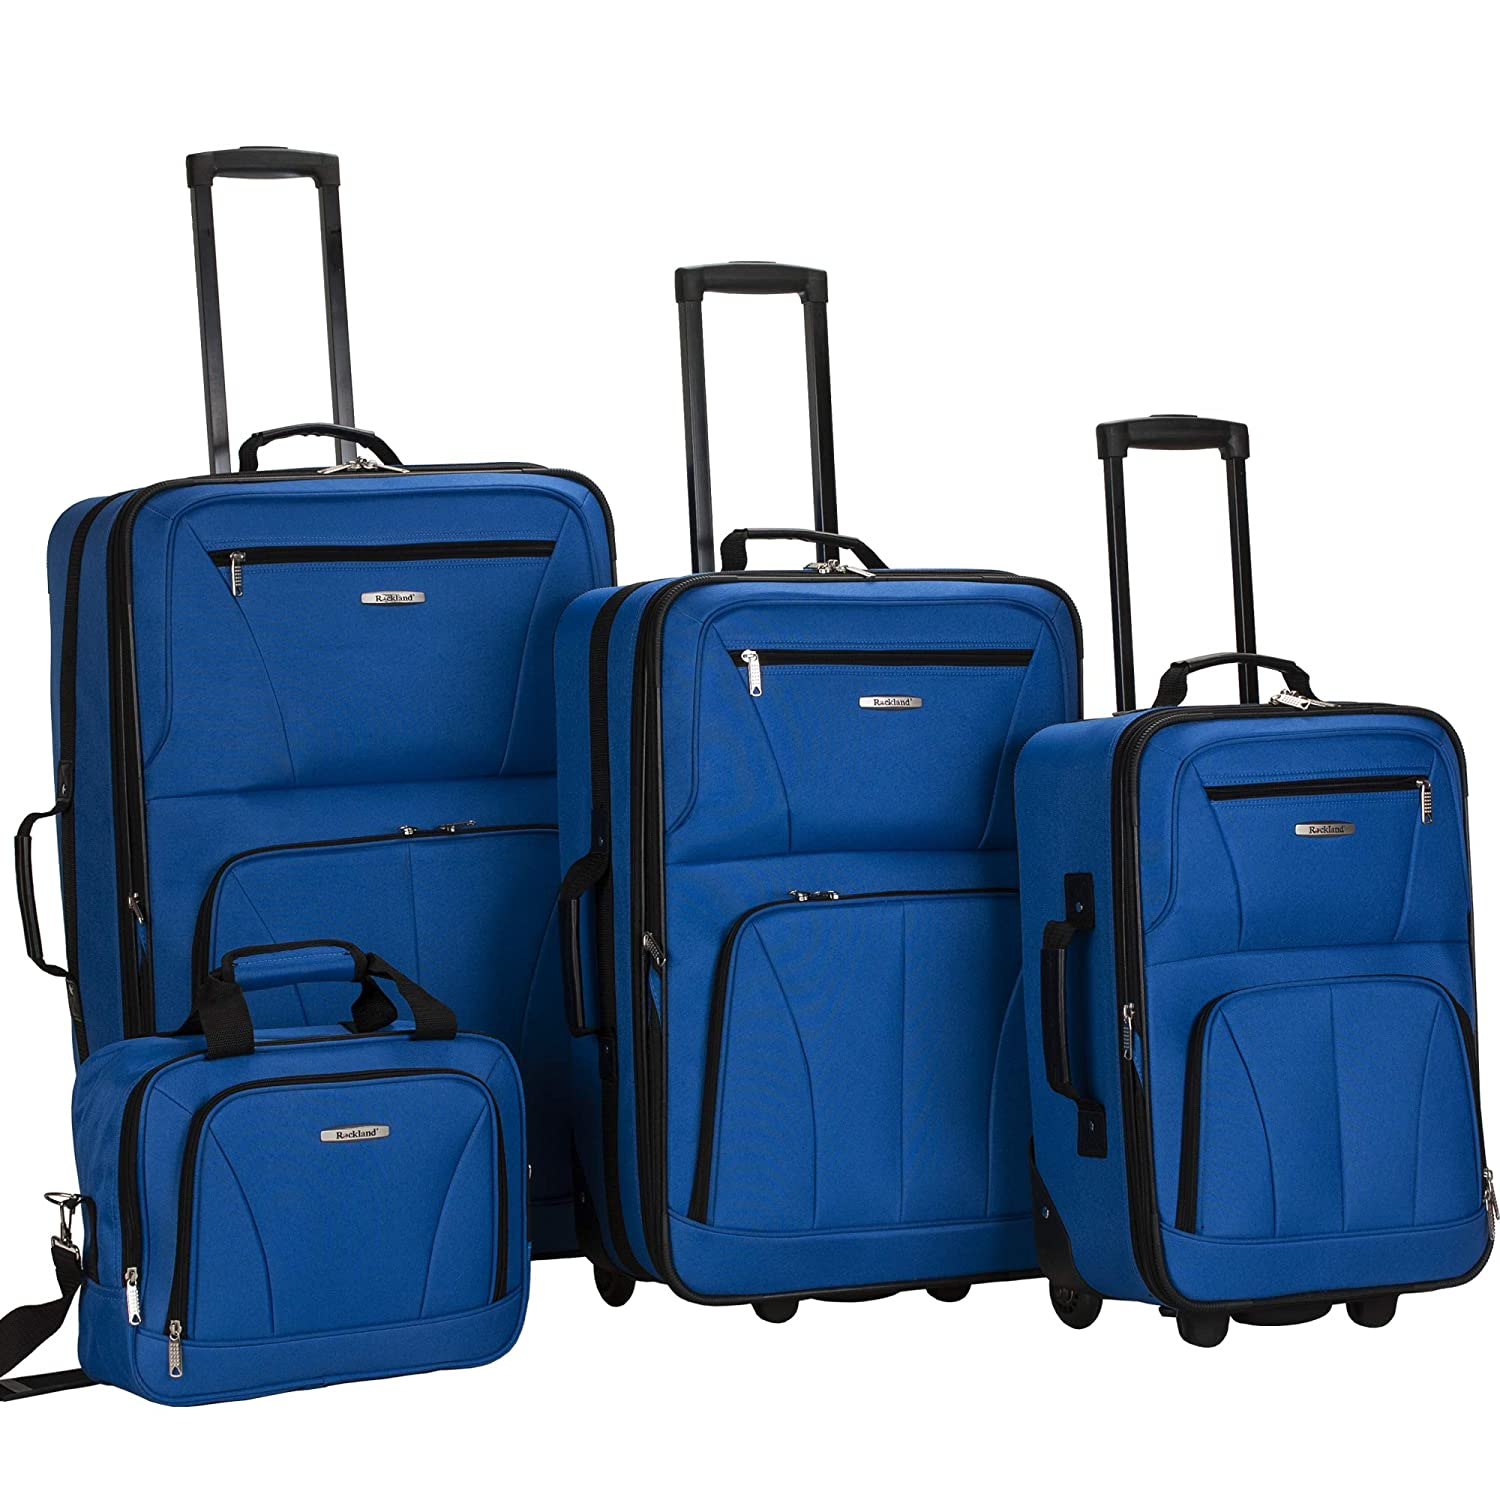 Rockland Luggage 4-Piece Set O...